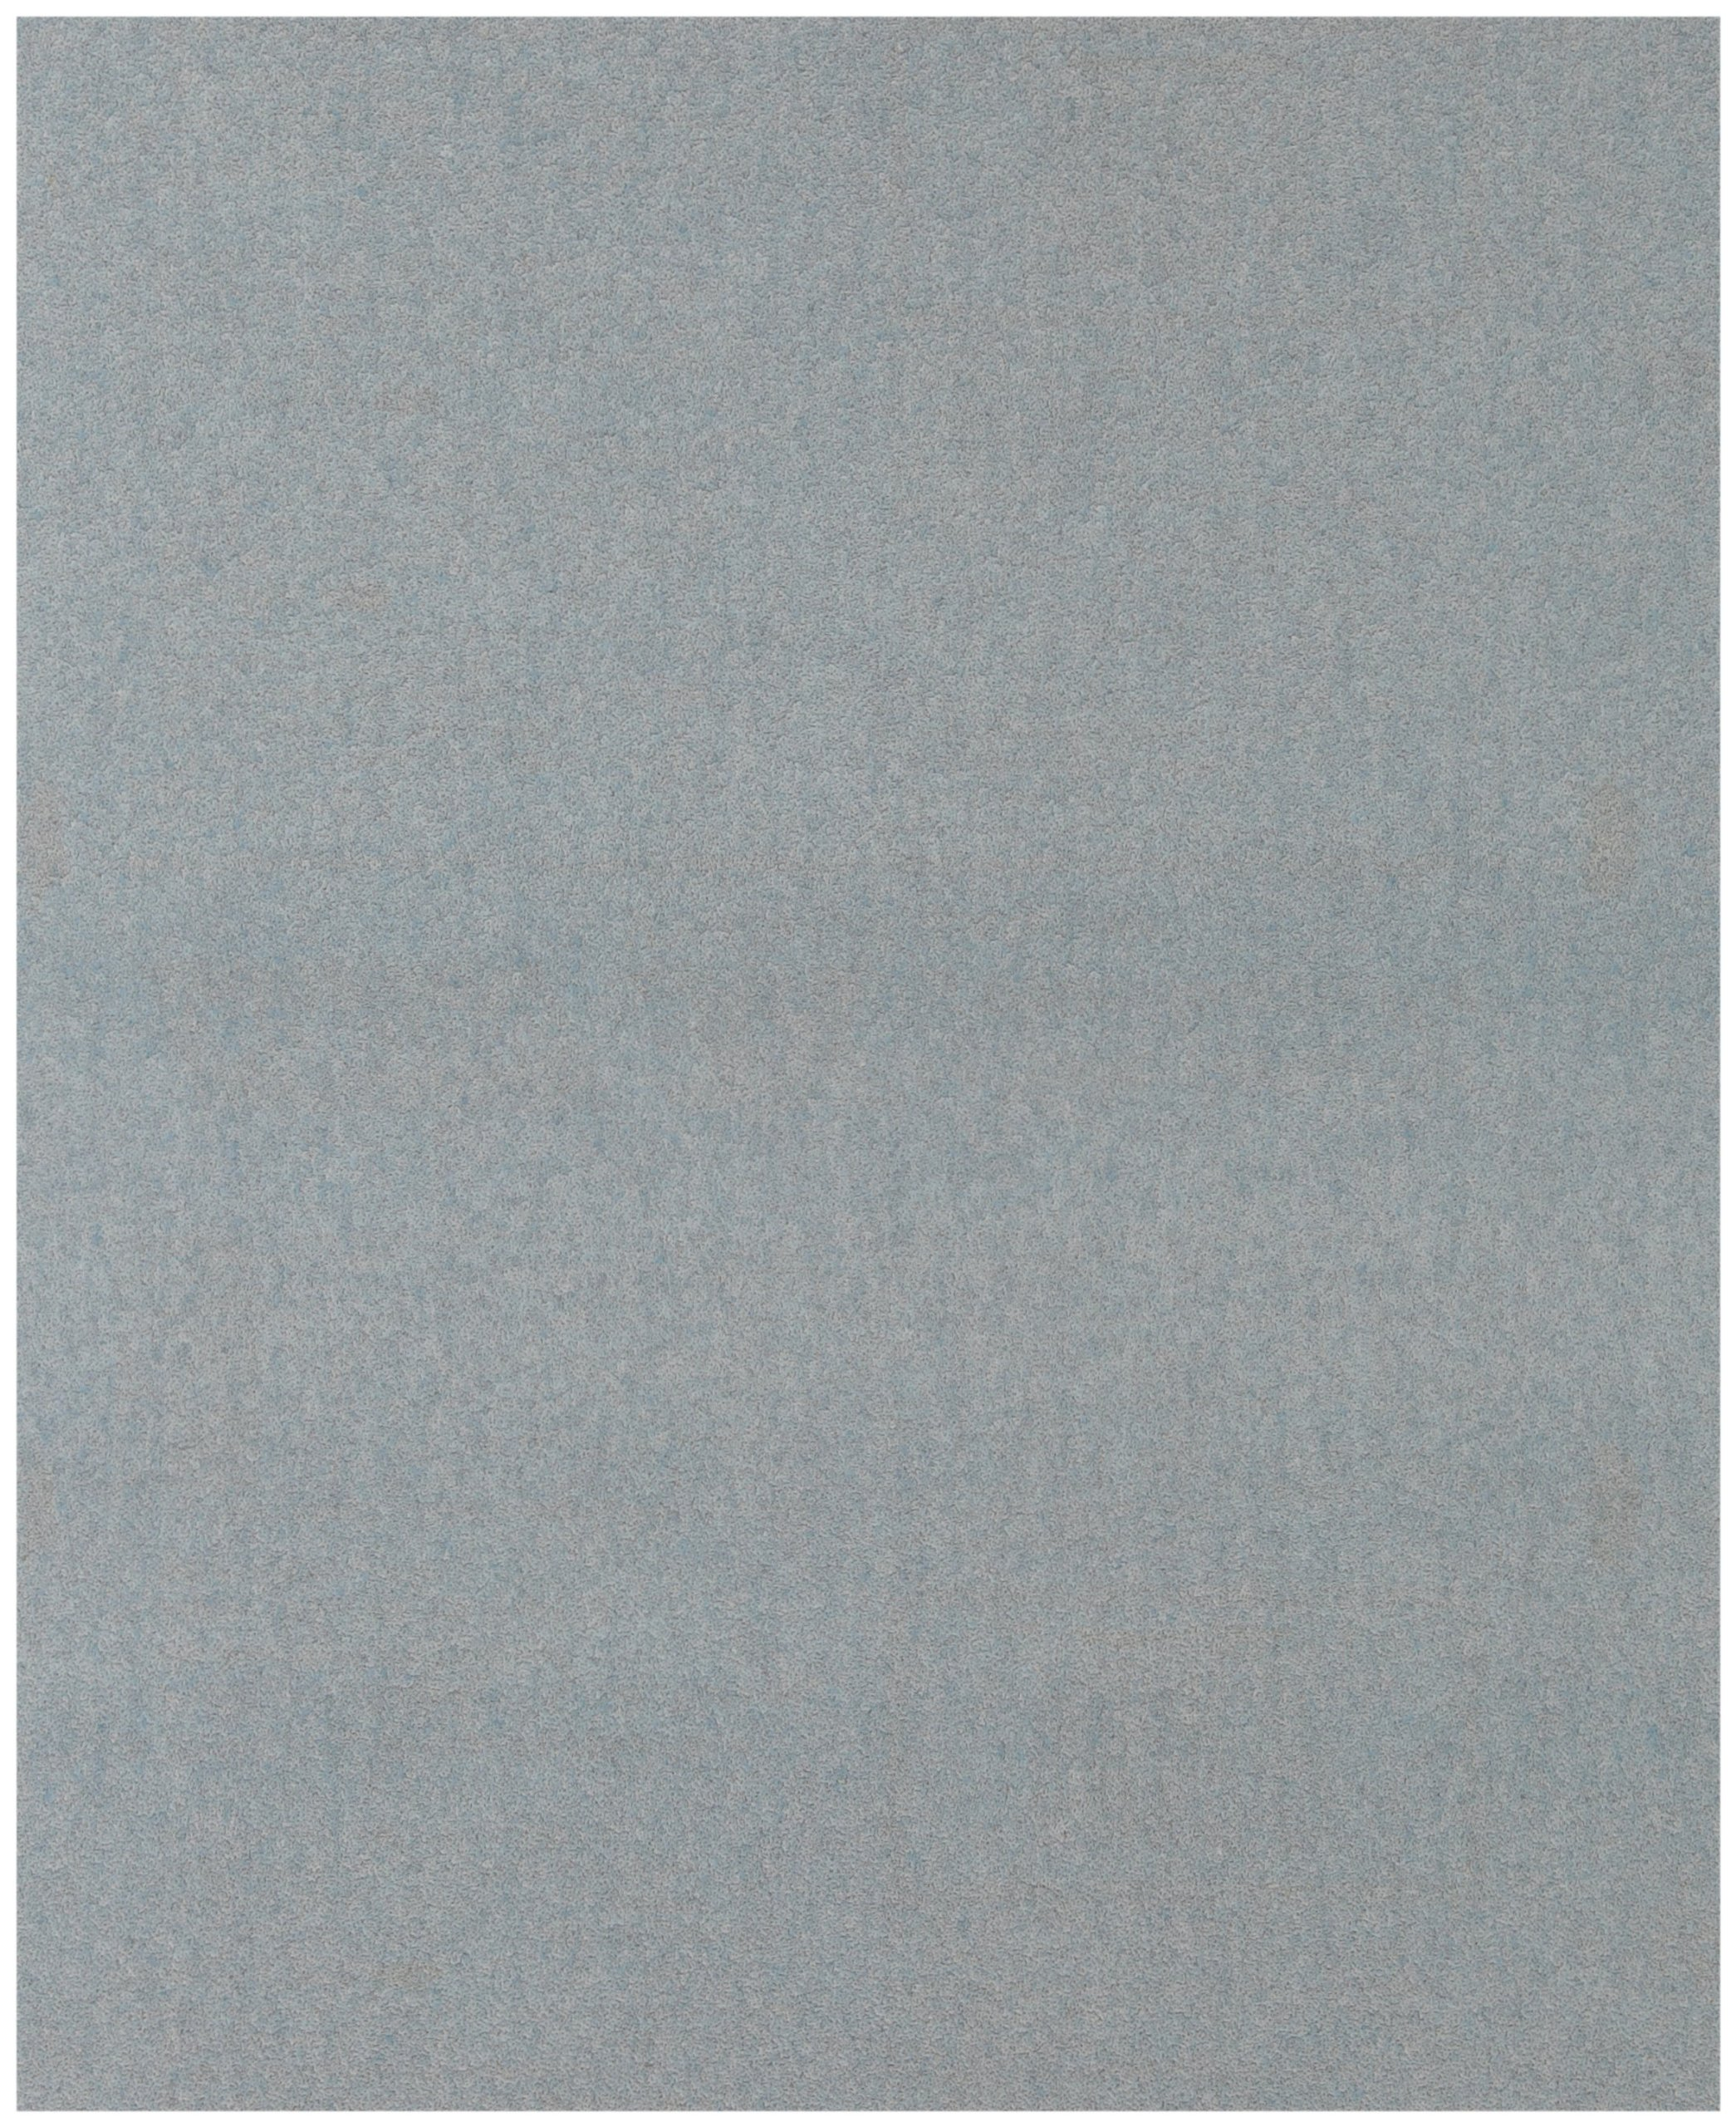 Norton Sandpaper 3X 80-Grit 9-by-11-Inch Sheets, 20-Sheets per Pack #2641 by Norton Abrasives - St. Gobain (Image #1)